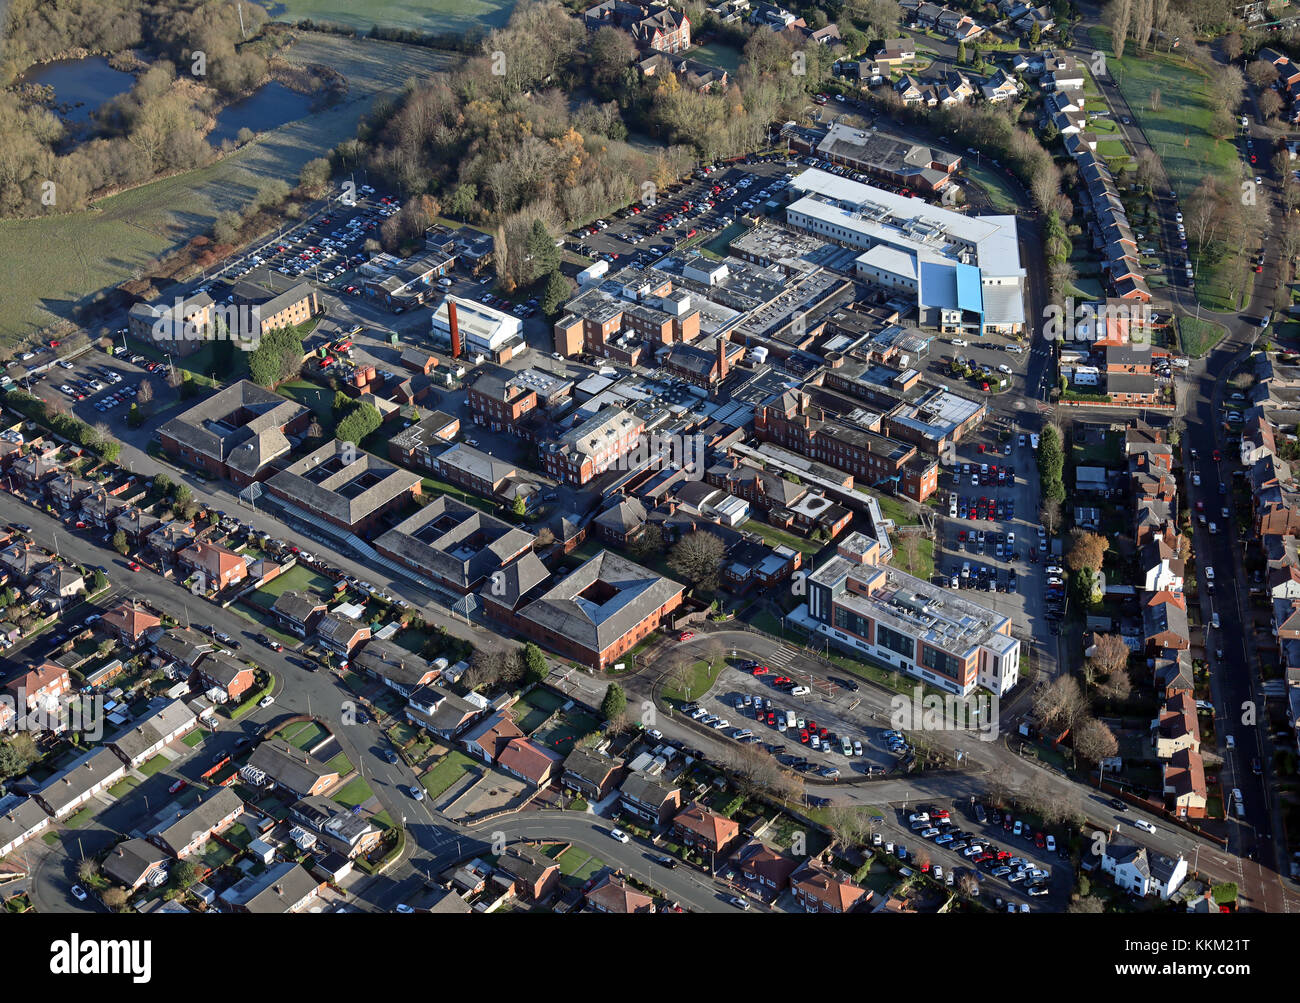 aerial view of Leigh Infirmary, NHS Hospital, Lancashire, UK - Stock Image